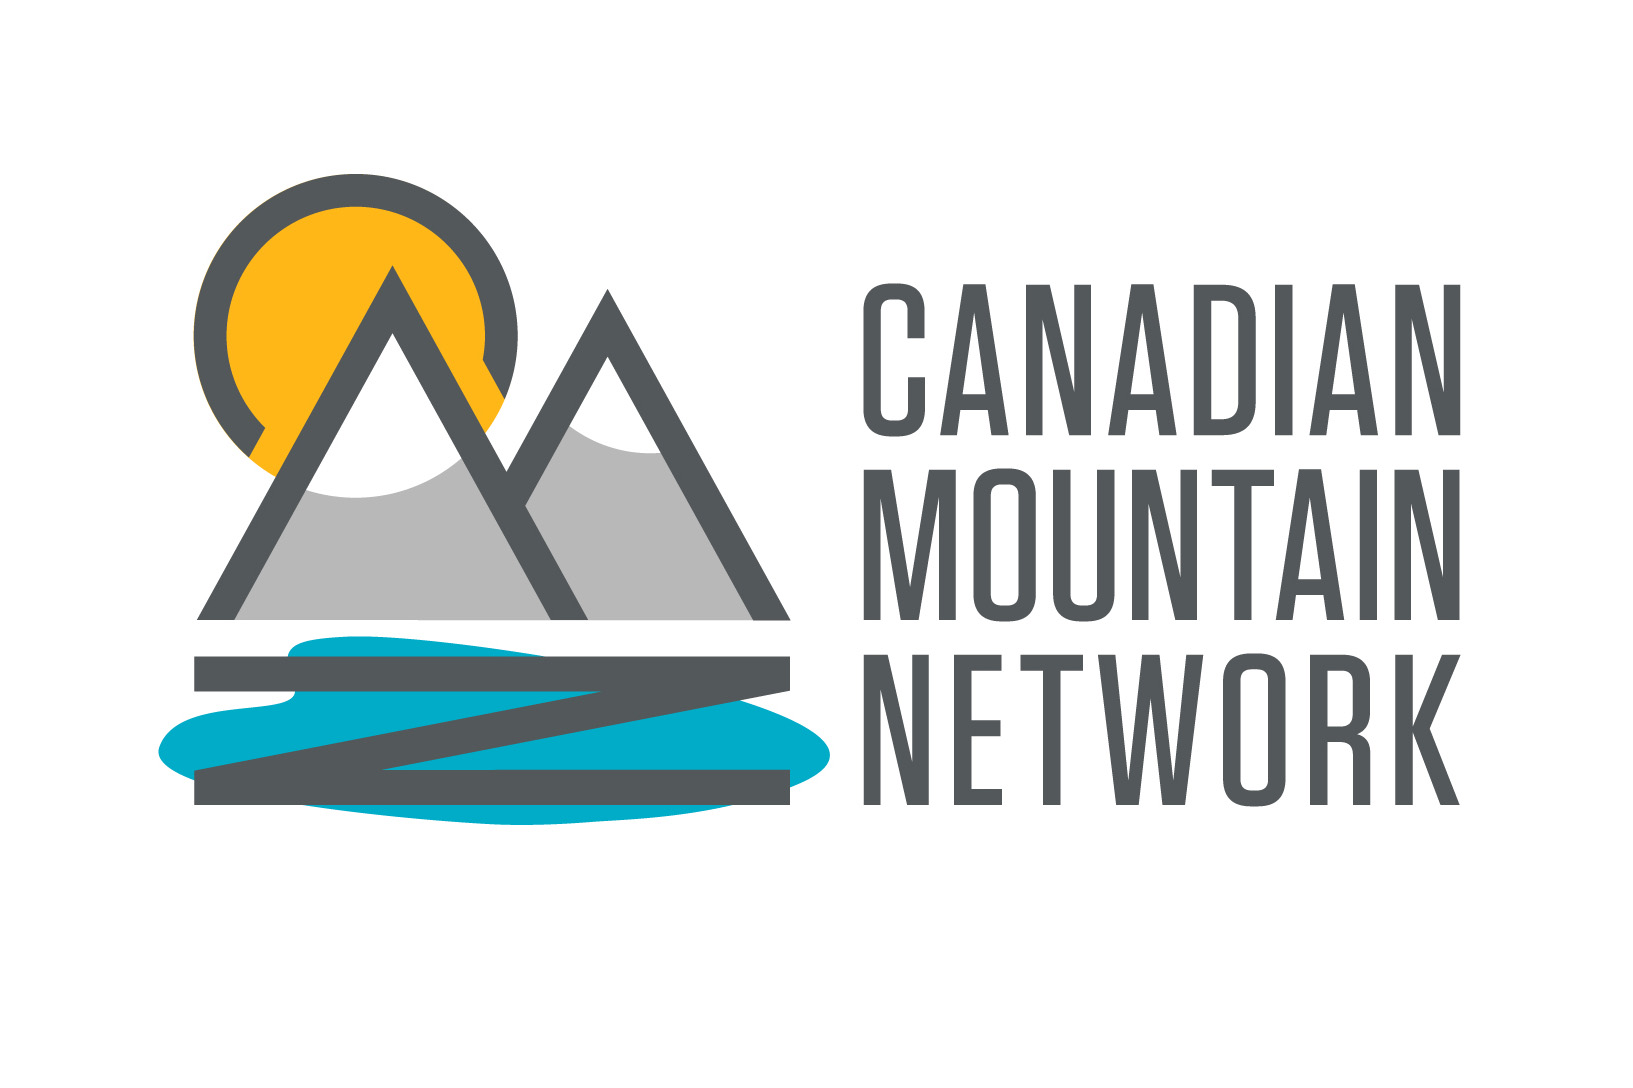 We have been working with the Yukon Government, University of Alberta, members of the Yukon CMN Working Group, and Yukon First Nations, among other communities and partners across Canada since the summer of 2017 to develop the Canadian Mountain Network's full application to the Networks of Centres of Excellence (NCE) competition. In November 2017, our application was accepted at the Letter of Intent stage and the full proposal and adjudication process was later completed in the summer. If the proposal is approved by the NCE committee, the Canadian Mountain Network (CMN) will fund critical mountain research projects over the network's five-year lifespan.  As  Co-Research Director  of this proposed network, Norma and her team at AICBR are very excited about the potential for this project to support community-driven and Indigenous-led research activities. The network will fund three different modes of research: researcher-led, partnership-driven and Indigenous-led projects. We believe that this third mode—Indigenous-led— is most innovative for a network as it advances research in the spirit of Reconciliation.   http://canadianmountainnetwork.ca/